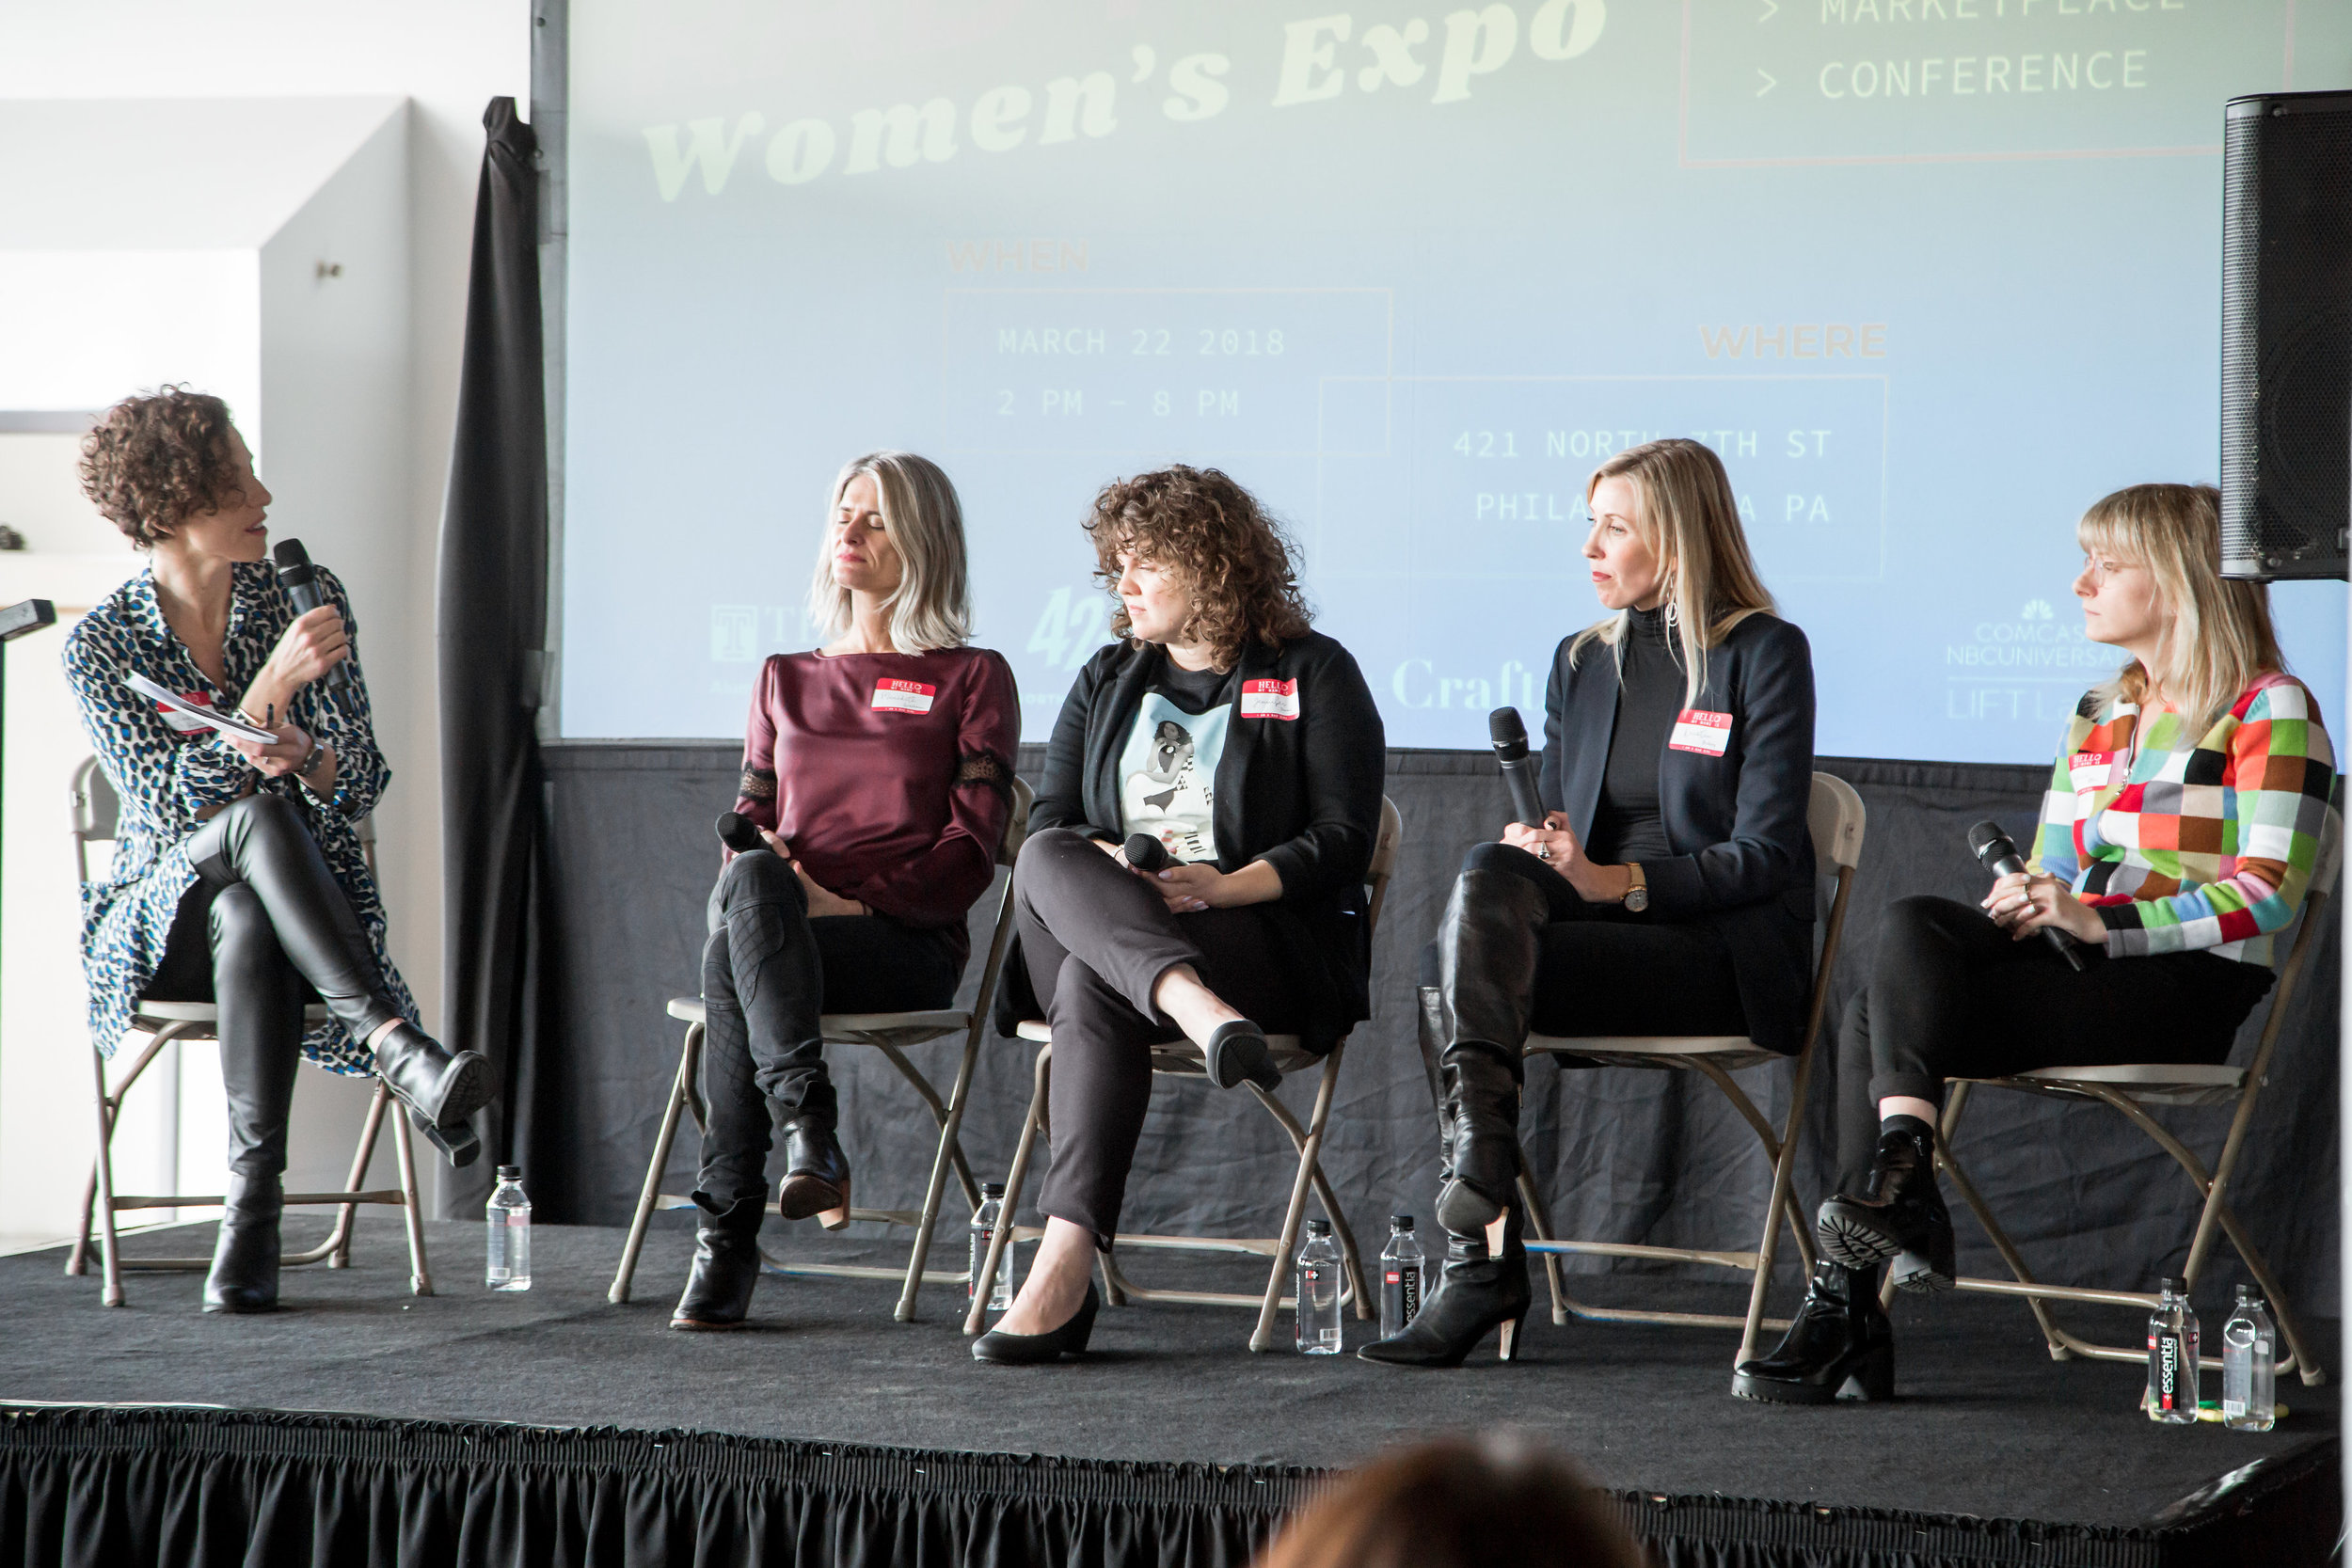 Everything You Need To Know About Networking: Moderator Lisa Vaccarelli, AVP Alumni Relations, Temple University. Meredith Waldman, Founder of Rally. Jennifer Devor, Director of Marketing, Campus Philly. Kristin Dudley, Founder of Co-Create. Rebecca Etter, Senior Manager of Innovation at Acelerada.  Photo by Creative Outfit, Inc.